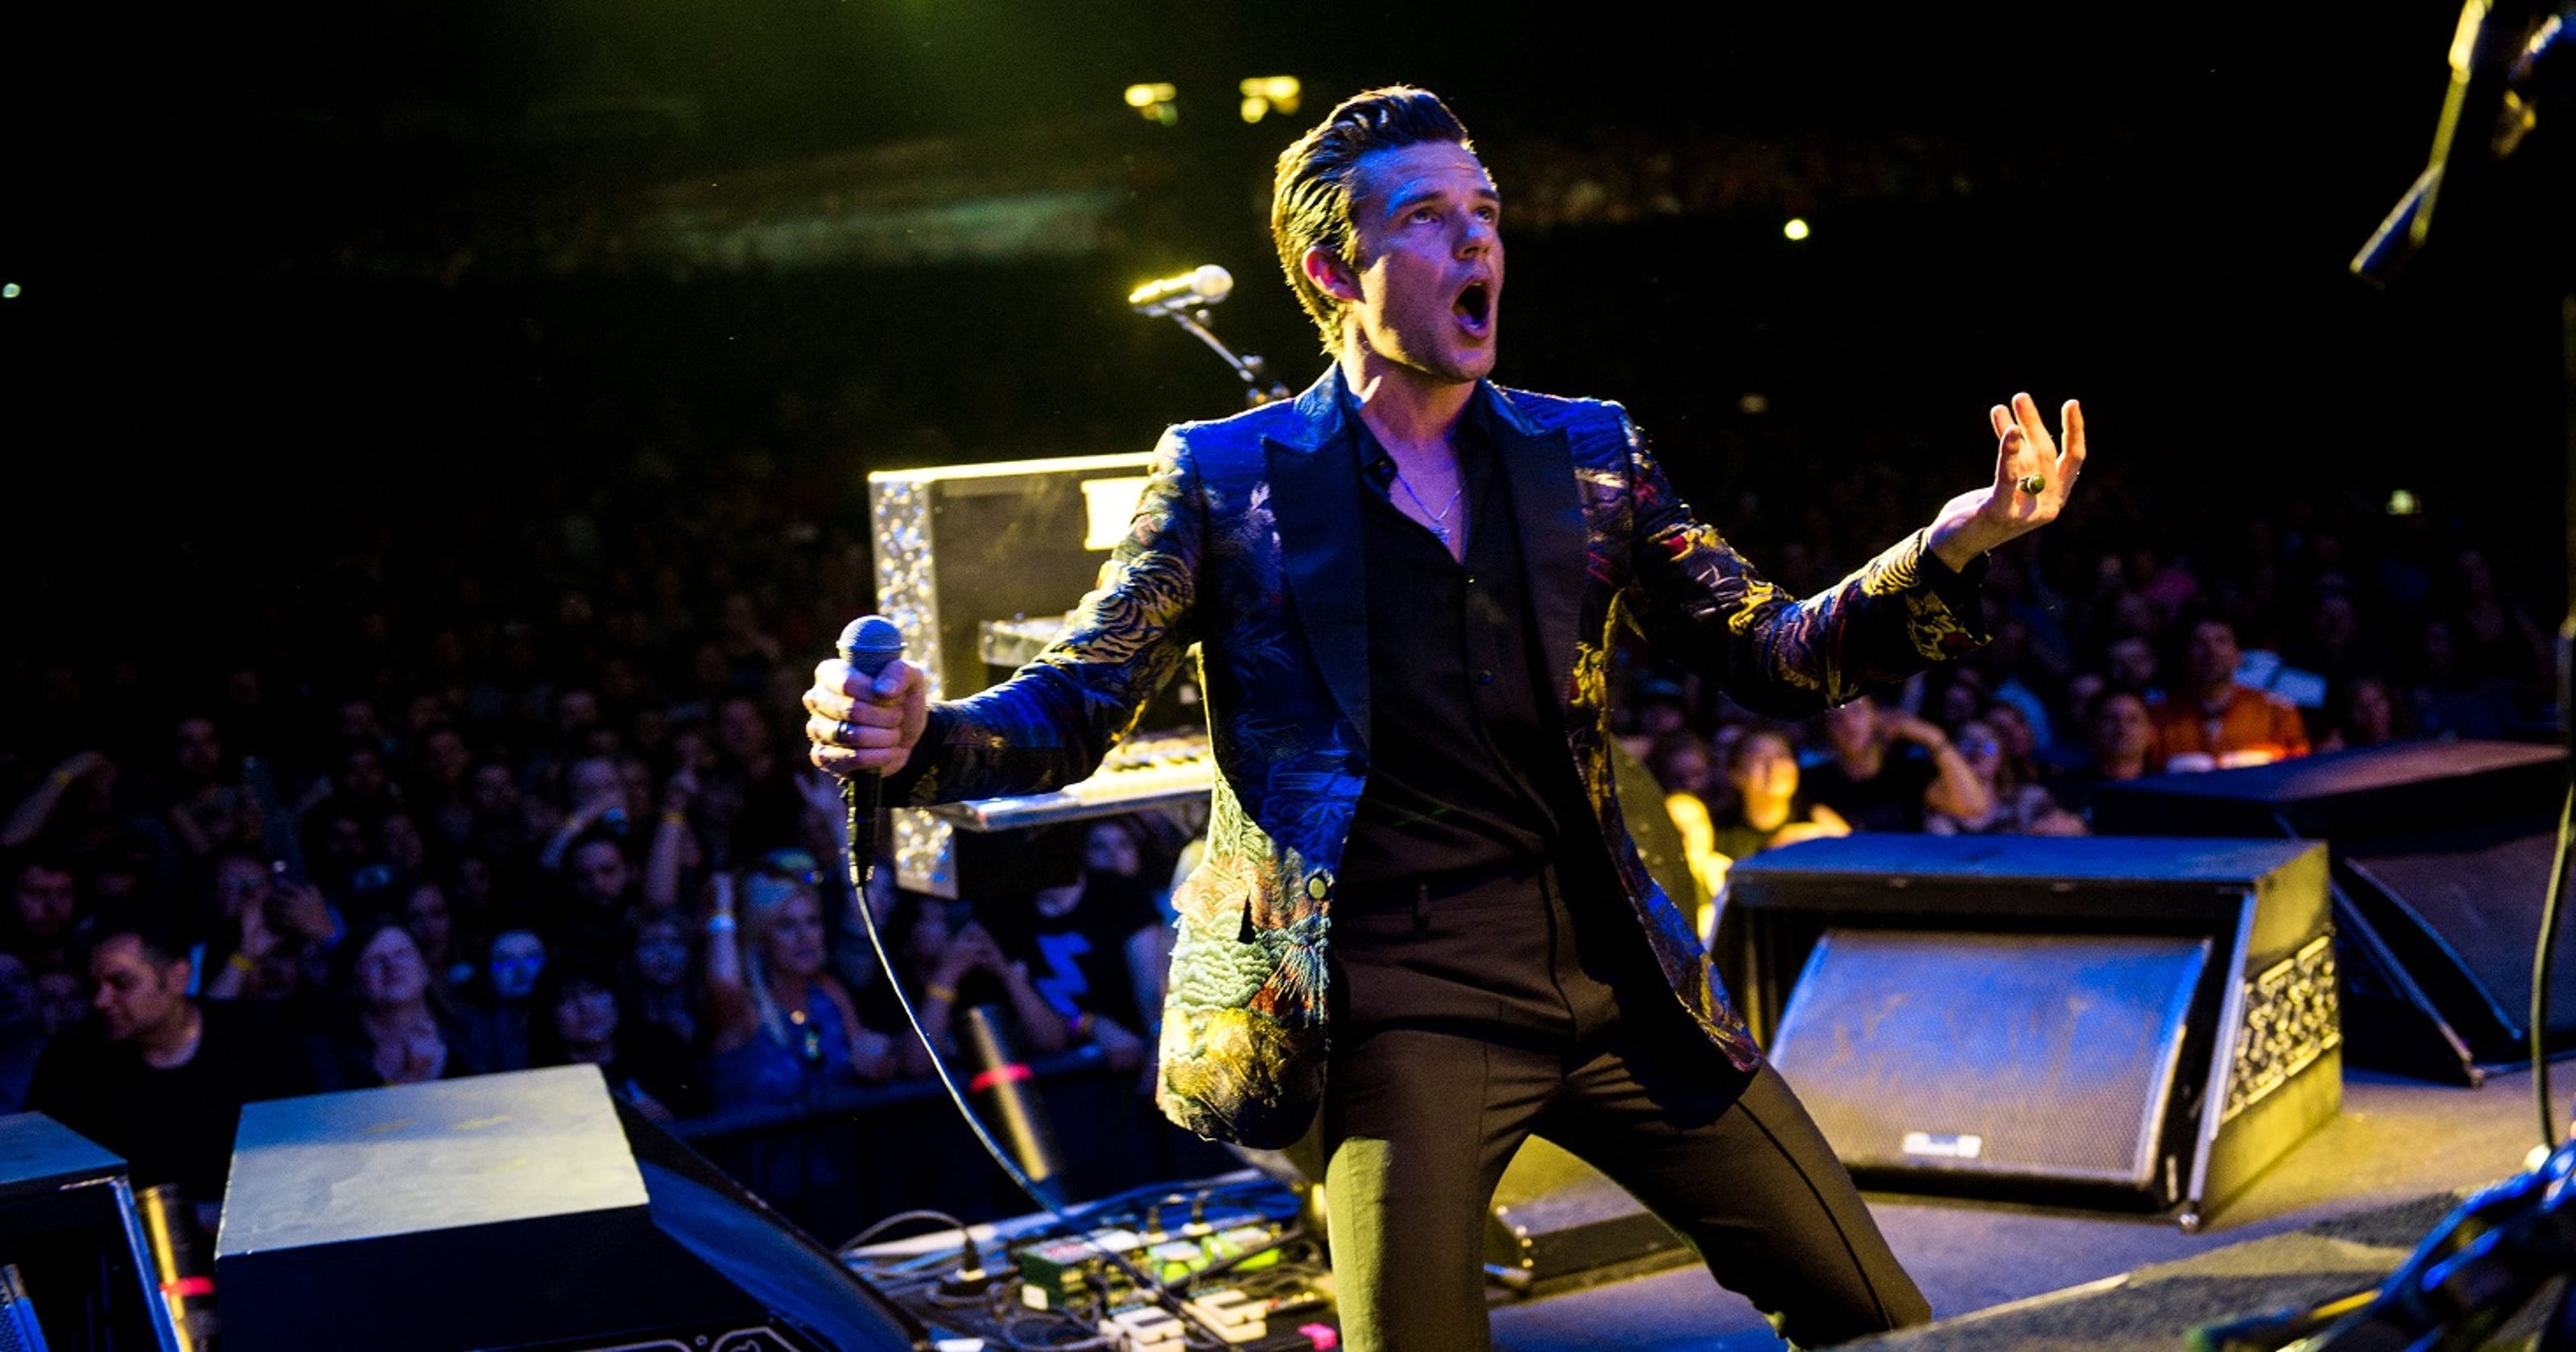 5 ways the Killers keep rock alive at Indianapolis Alt 103.3 show